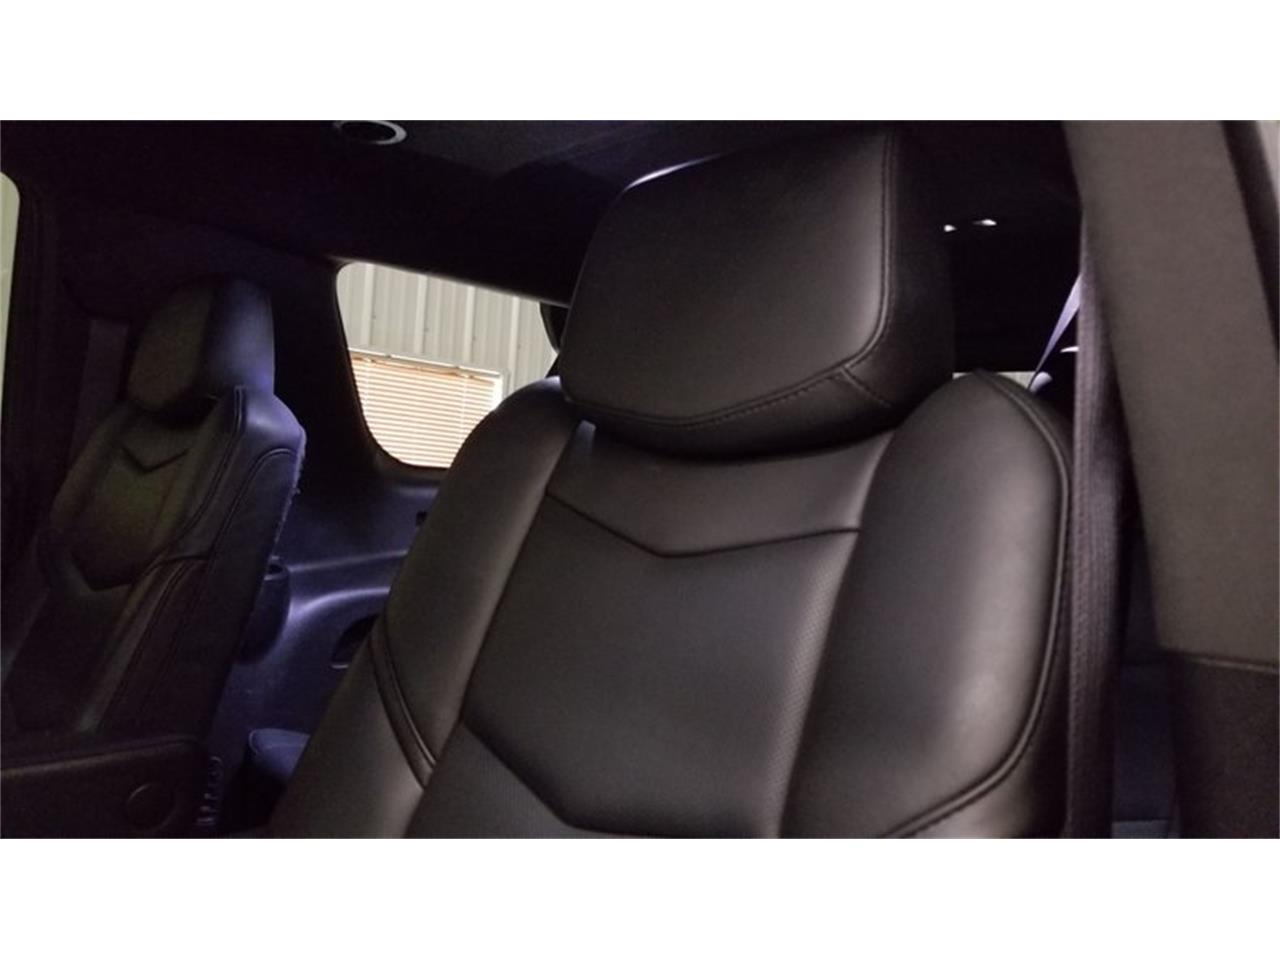 2017 Cadillac Escalade (CC-1226774) for sale in Mankato, Minnesota